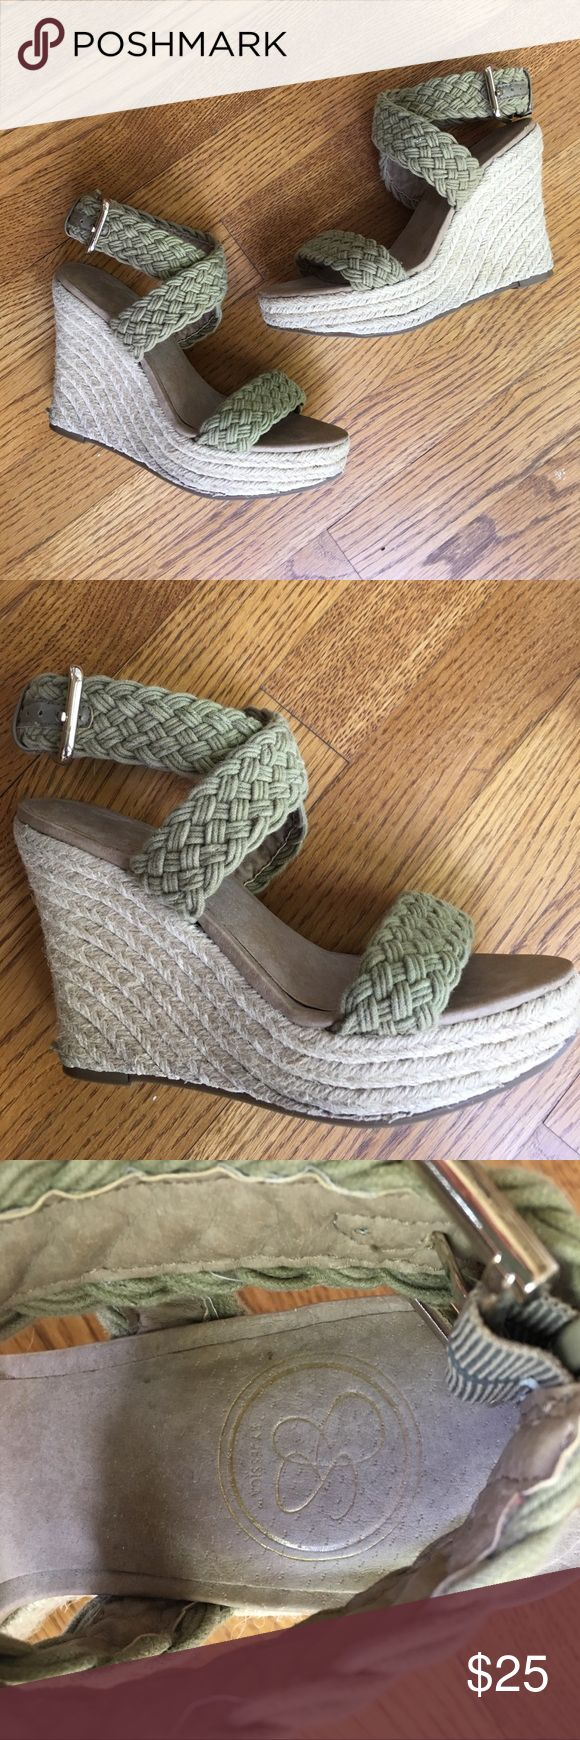 Jessica Simpson wedges Size 7 Only worn a few times. Jessica Simpson Shoes Wedges